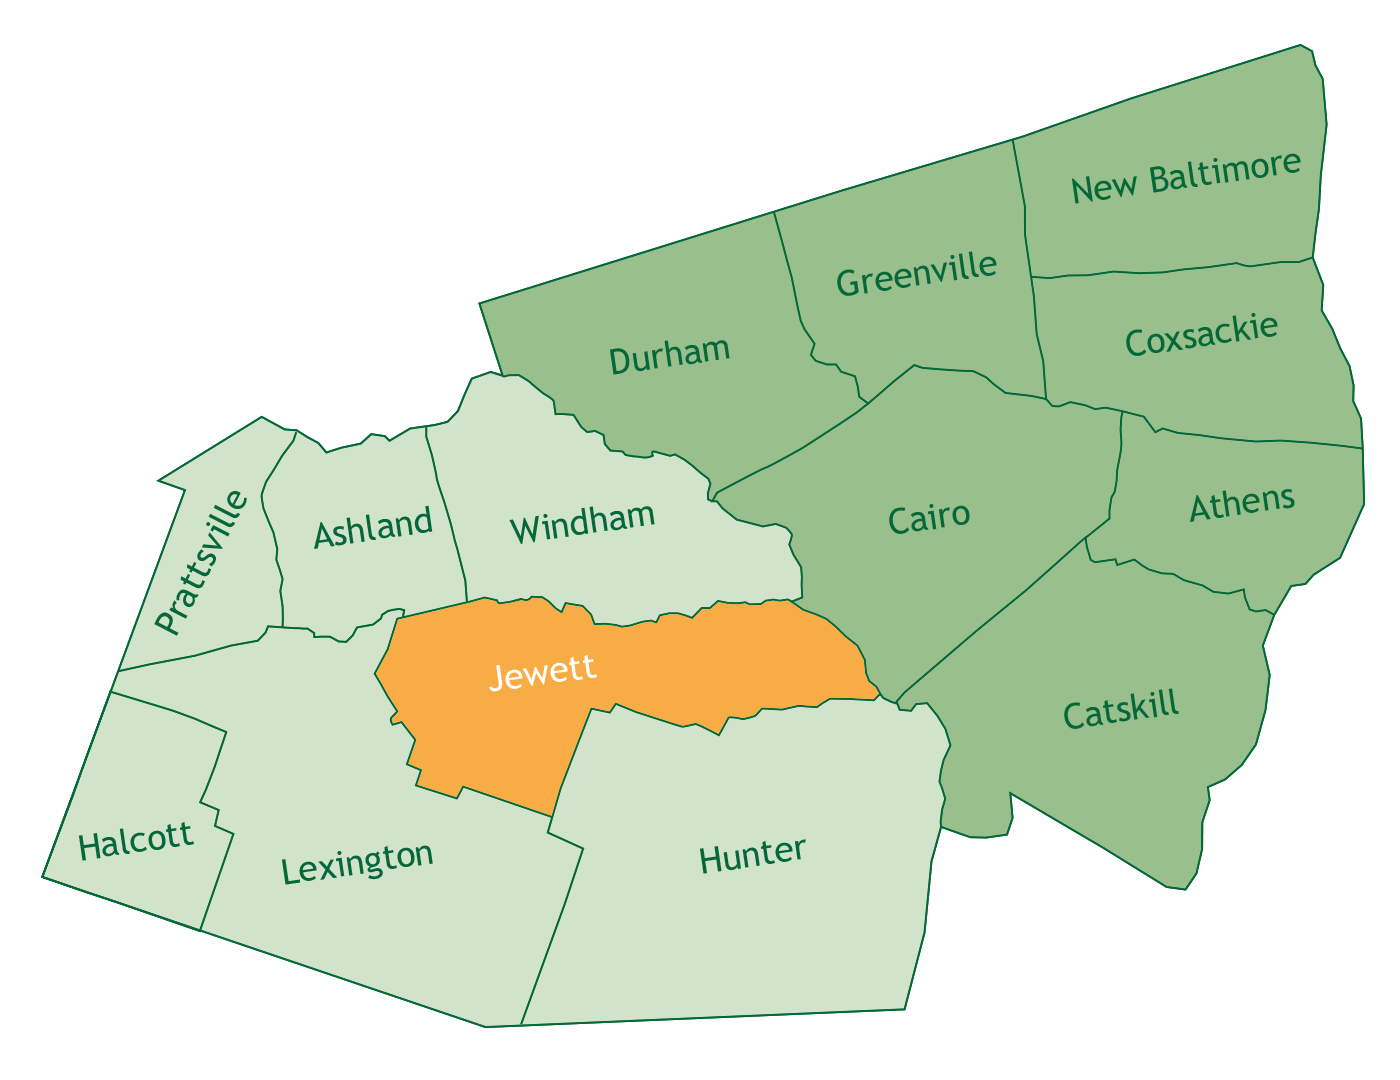 Jewett in Greene County